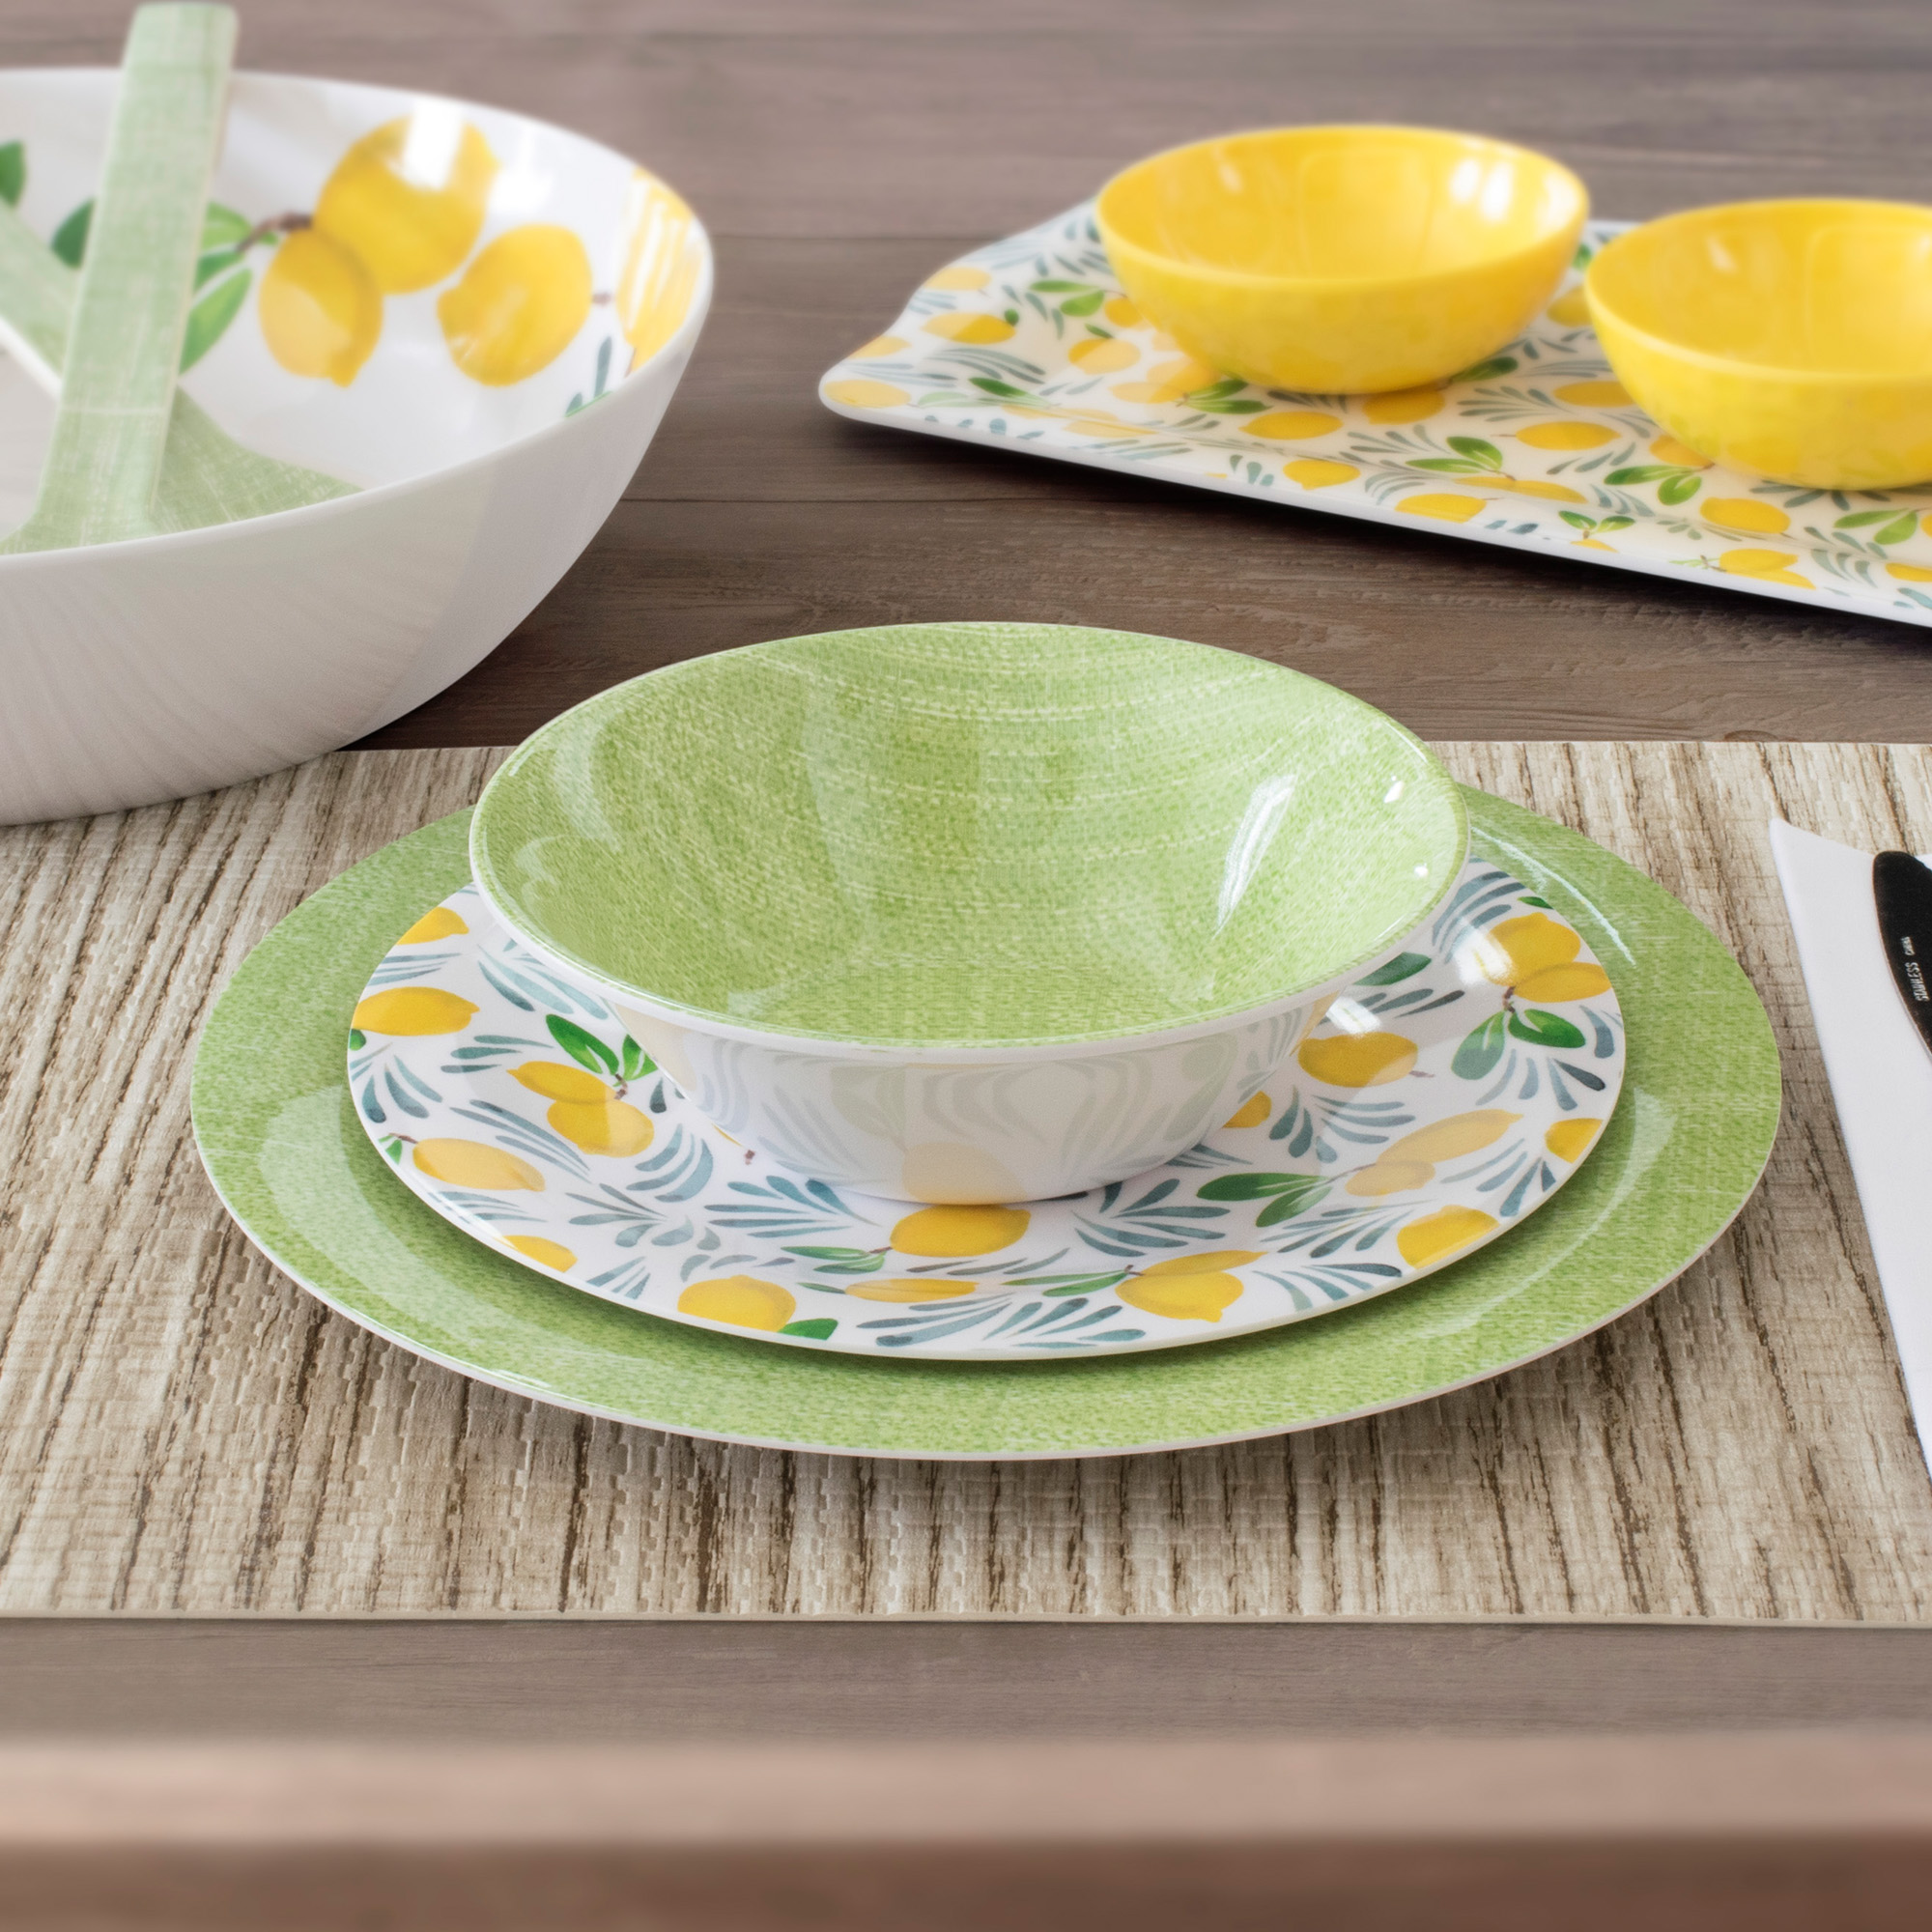 Mainstays Outdoor Melamine Dinnerware Set, 12-Piece